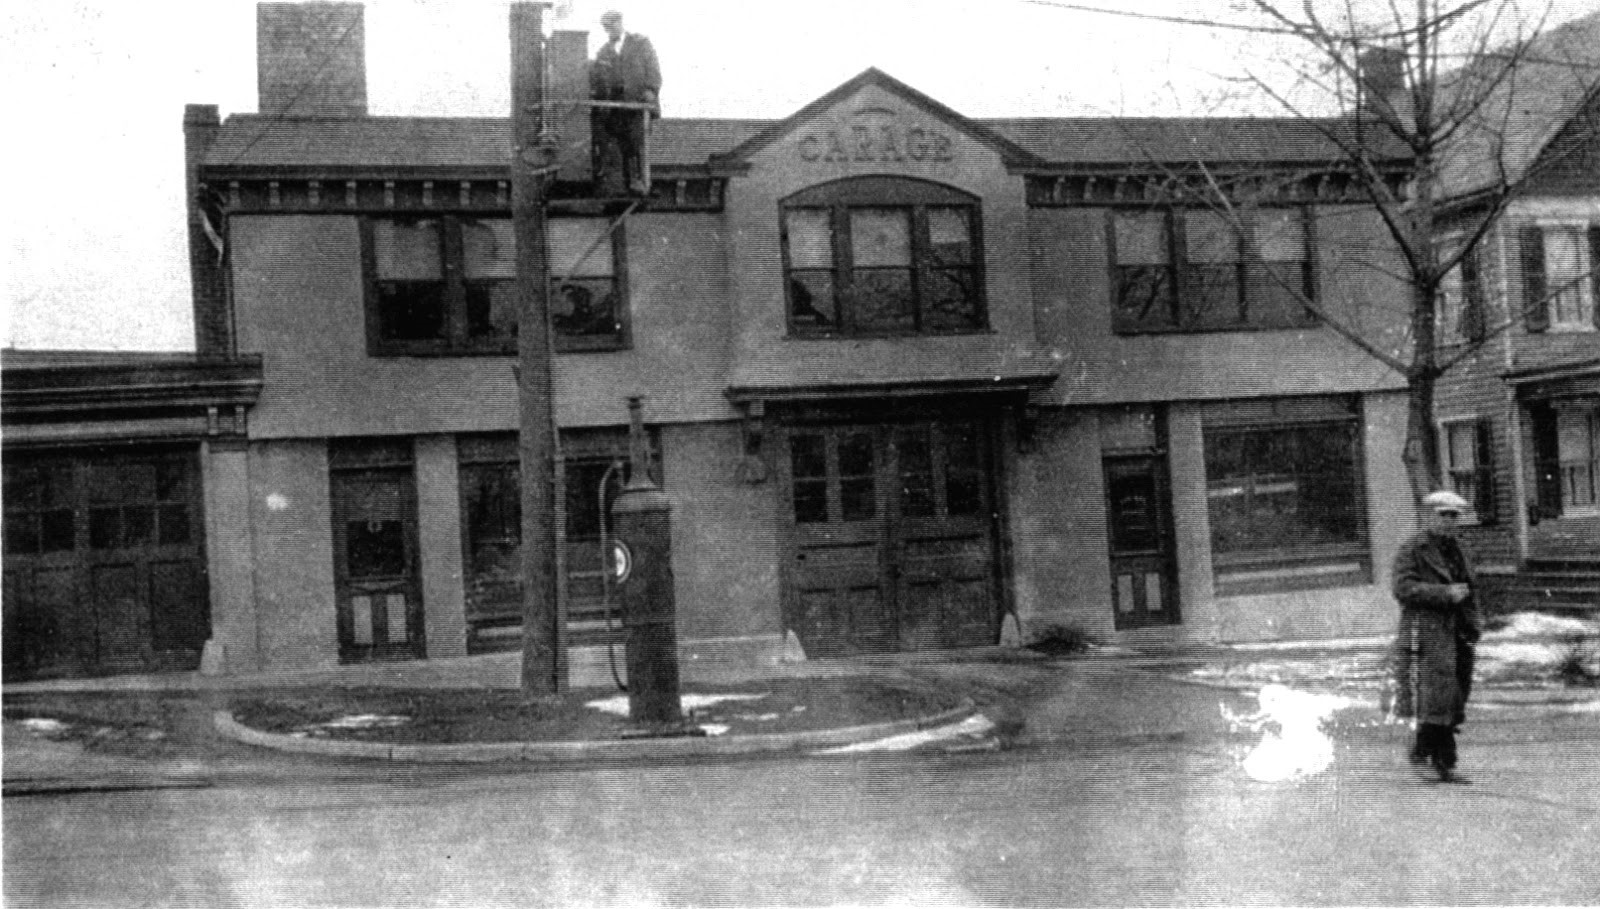 10 North 2nd in the early 20th century